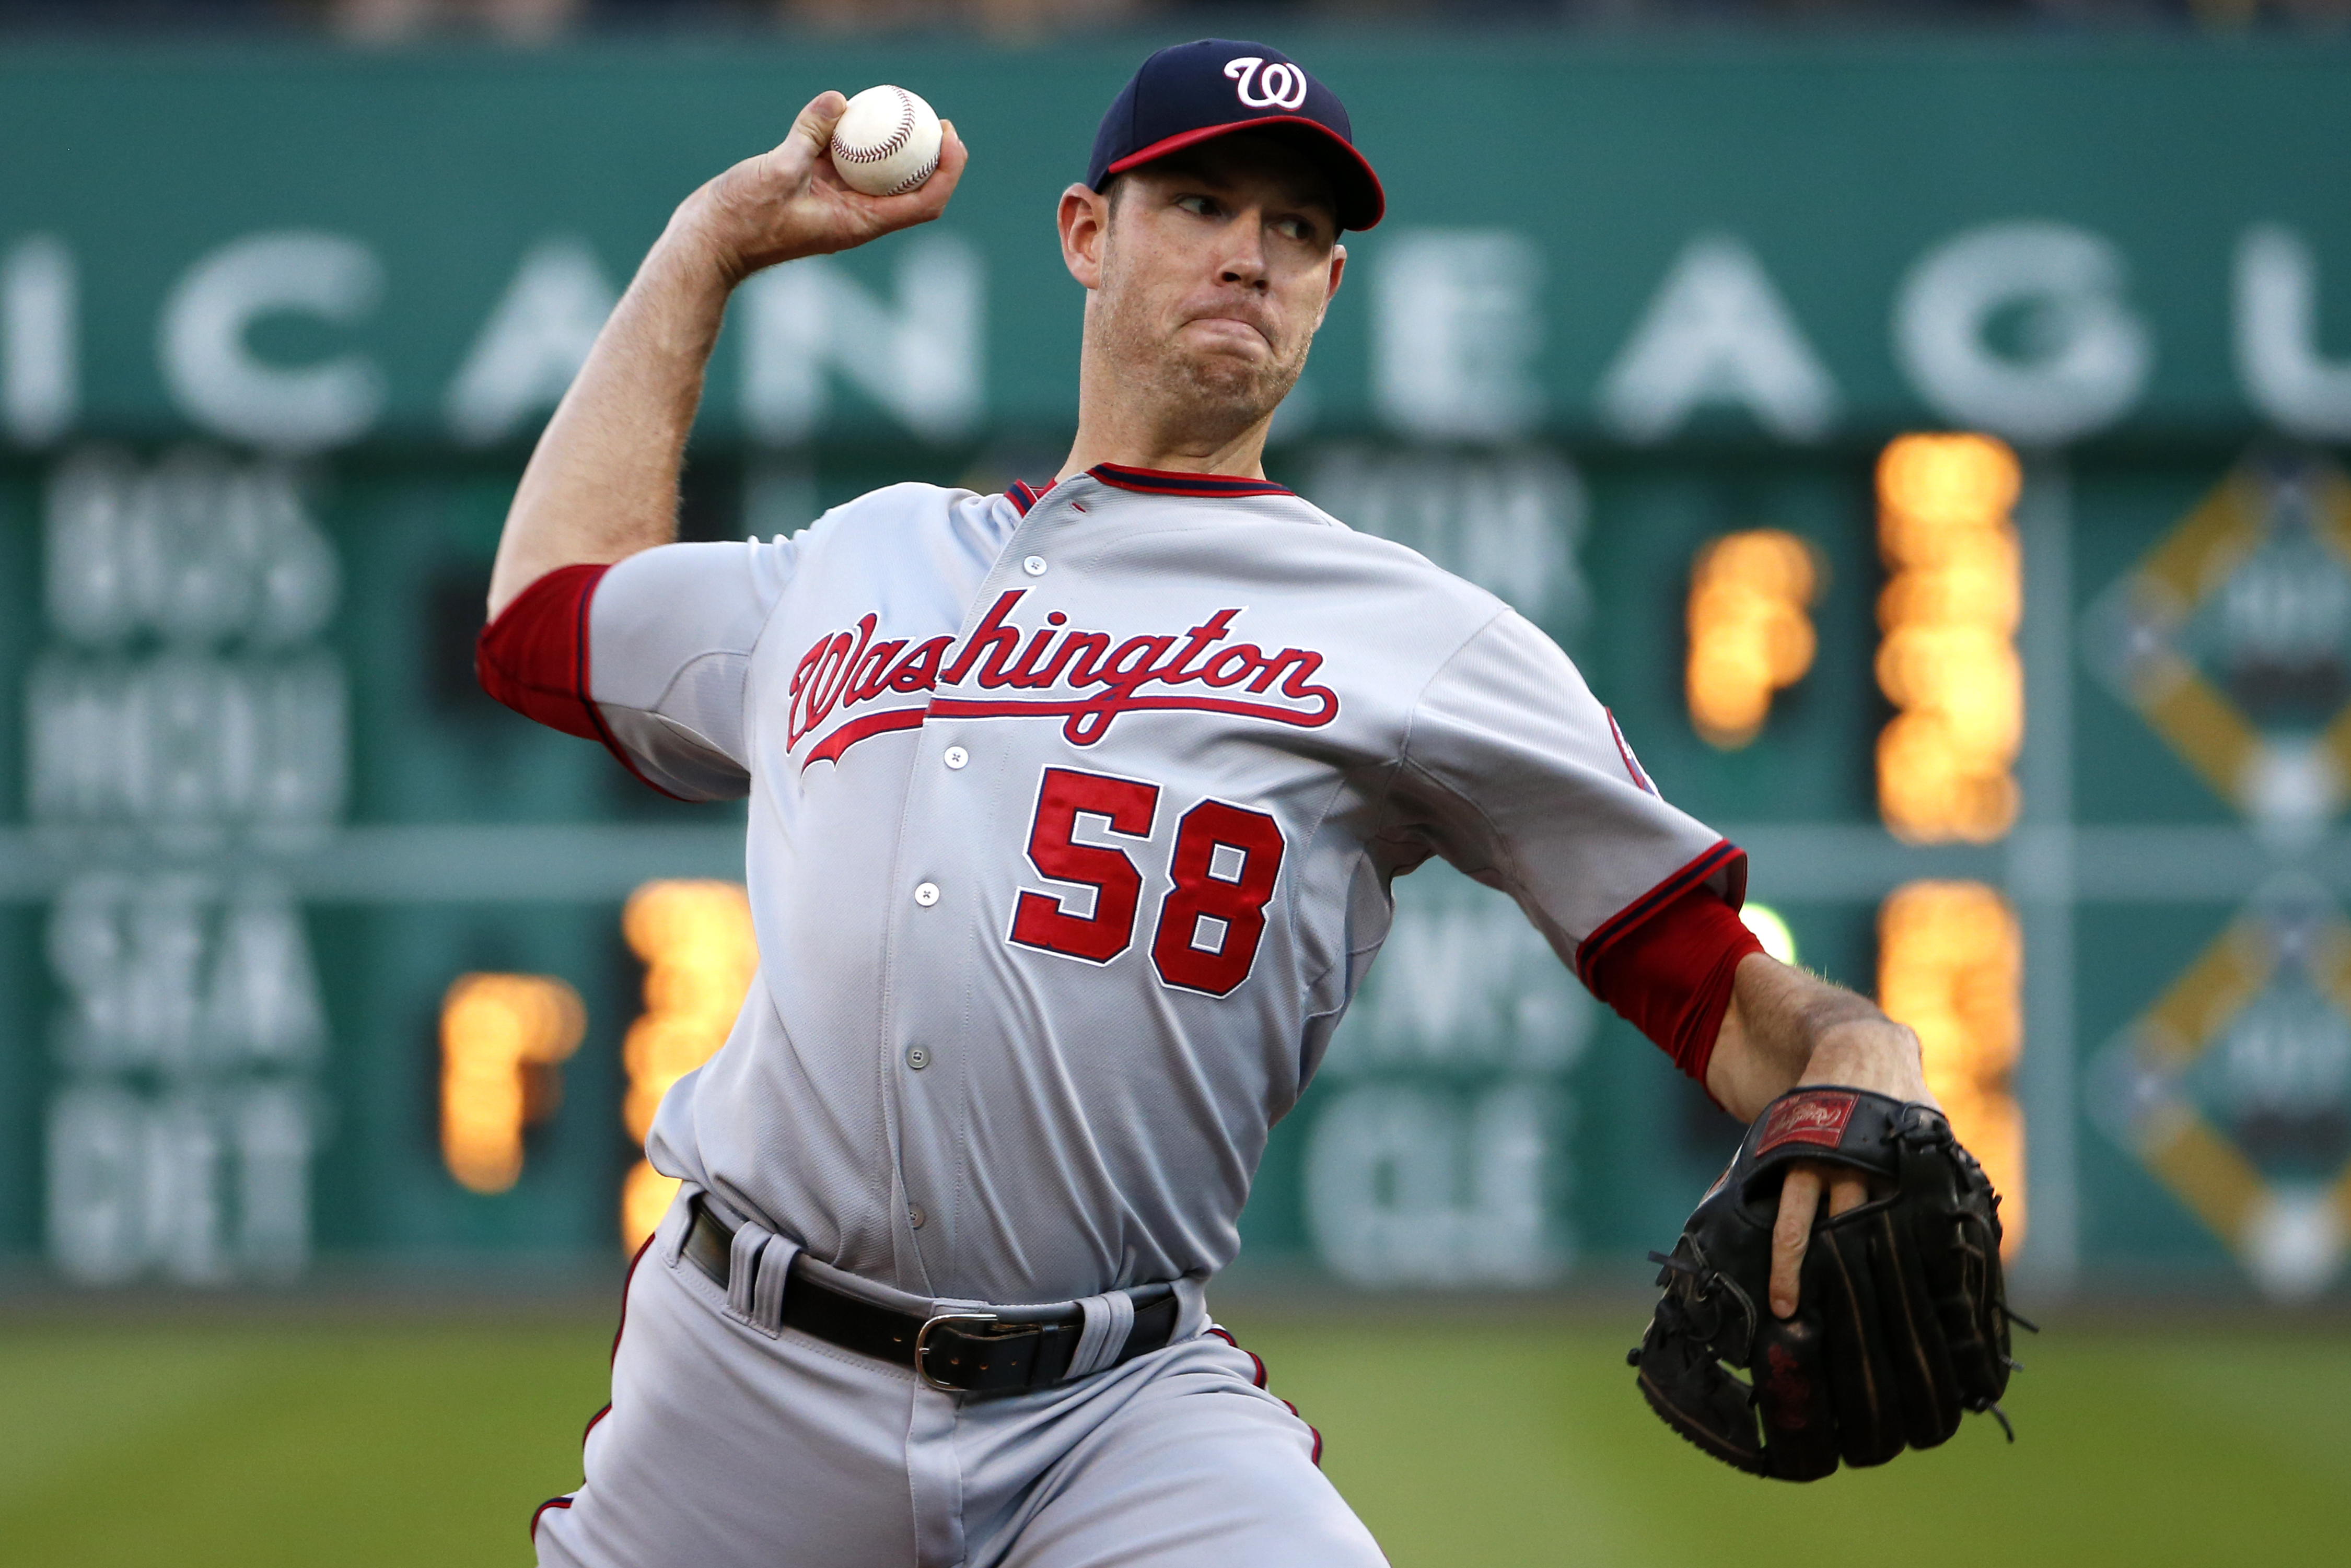 FILE - In this July 23, 2015, file photo, Washington Nationals starting pitcher Doug Fister (58) delivers in the first inning of a baseball game against the Pittsburgh Pirates in Pittsburgh. Right-hander Doug Fister and the Houston Astros have agreed to a